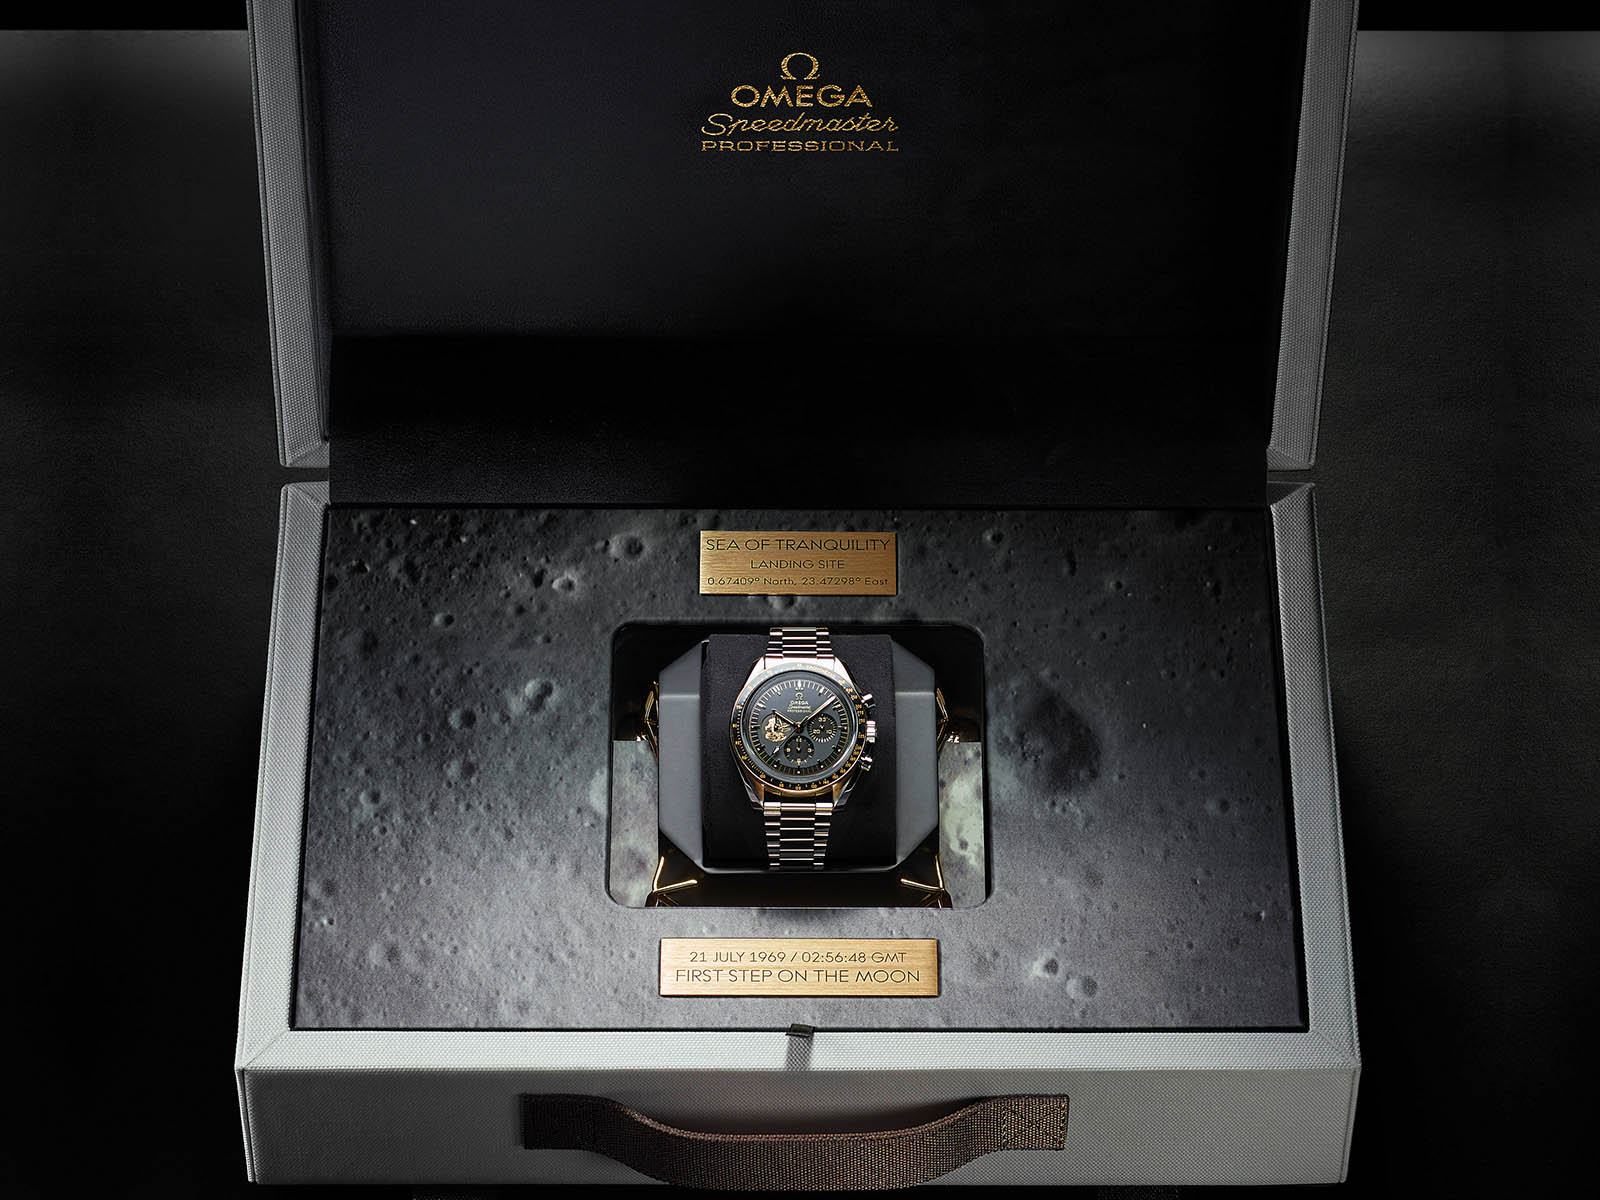 310-20-42-50-01-001-omega-speedmaster-apollo-11-50th-anniversary-limited-edition-7.jpg